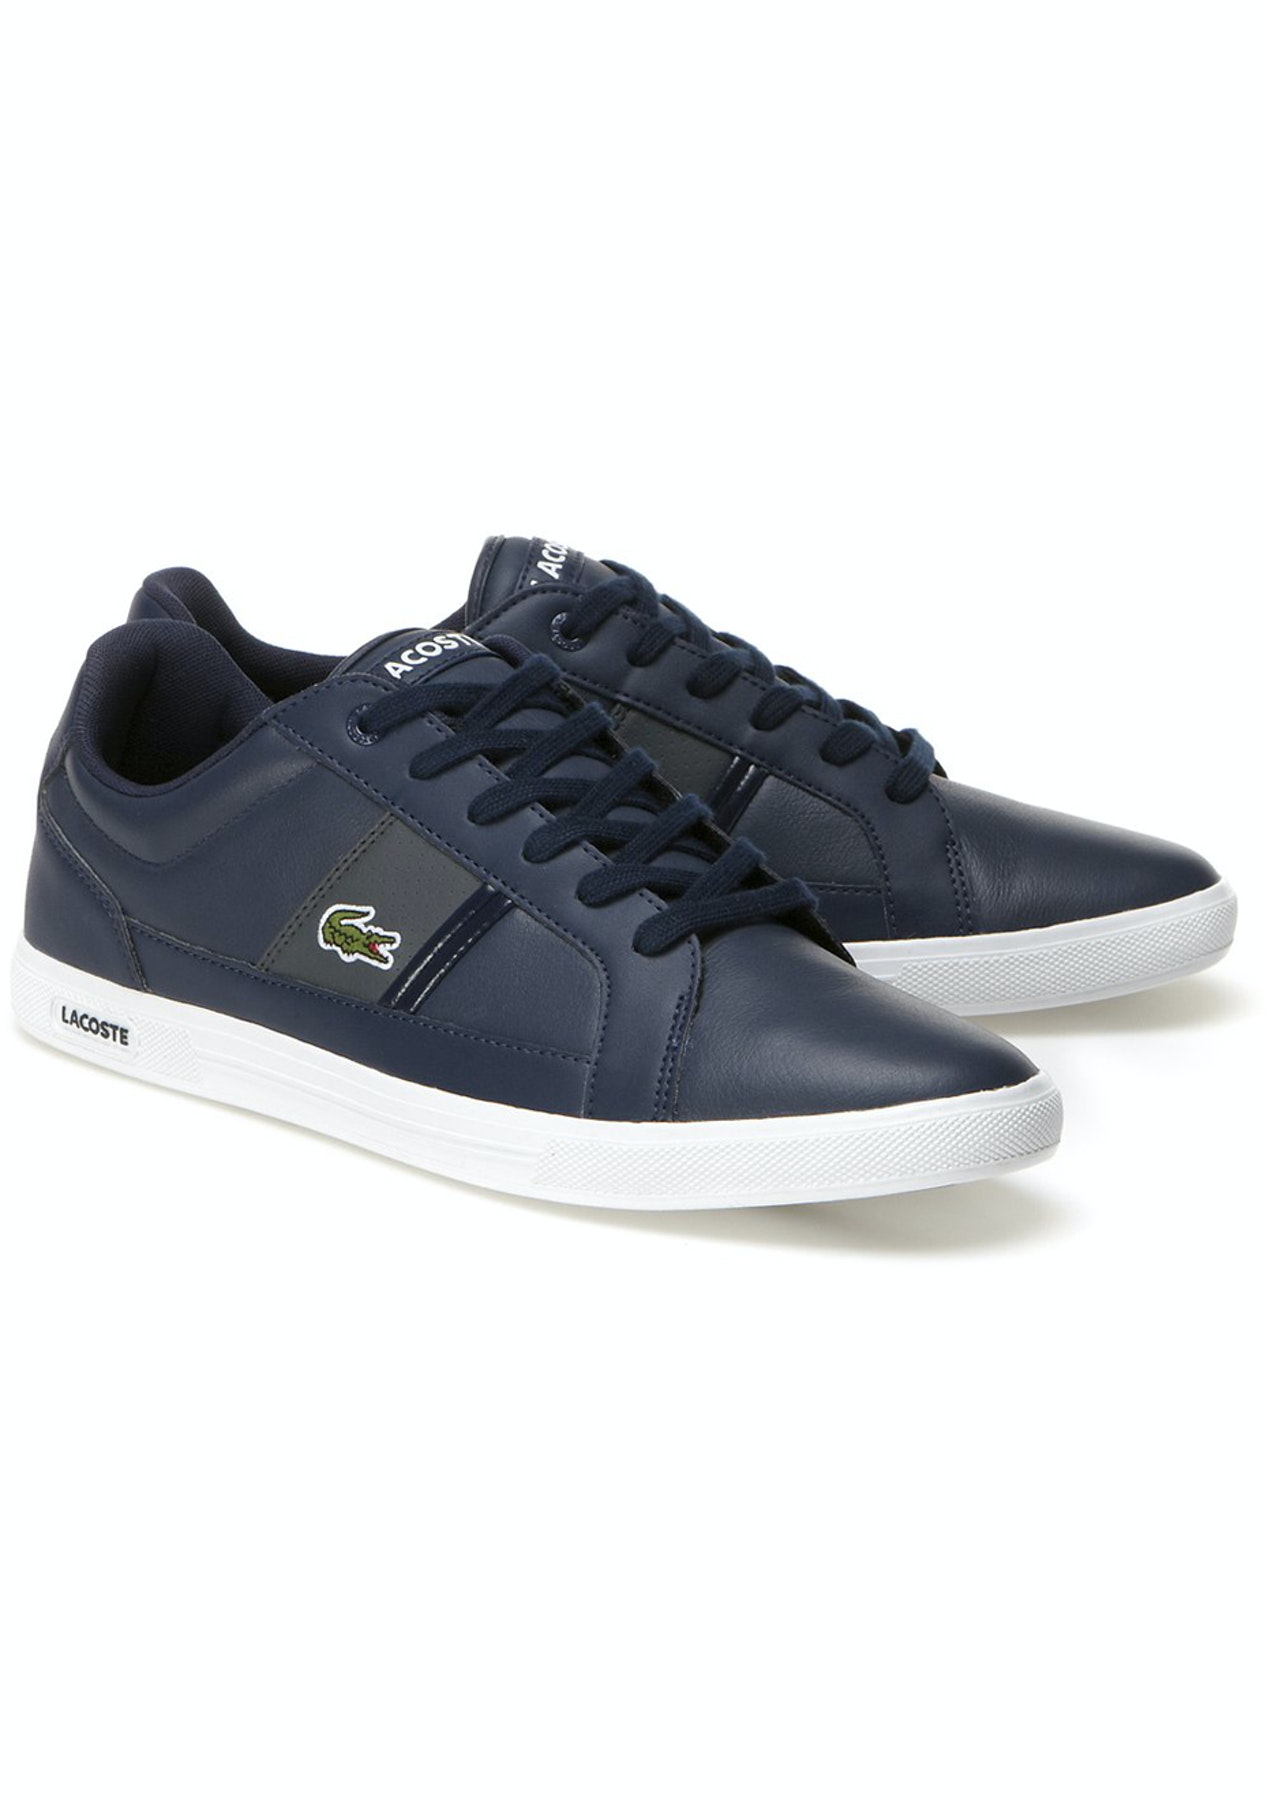 47eb5155577f7 Mens Lacoste - Europa Lcr3 Spm - Navy Dark Grey - Last Ones  Mens Shoes -  Onceit